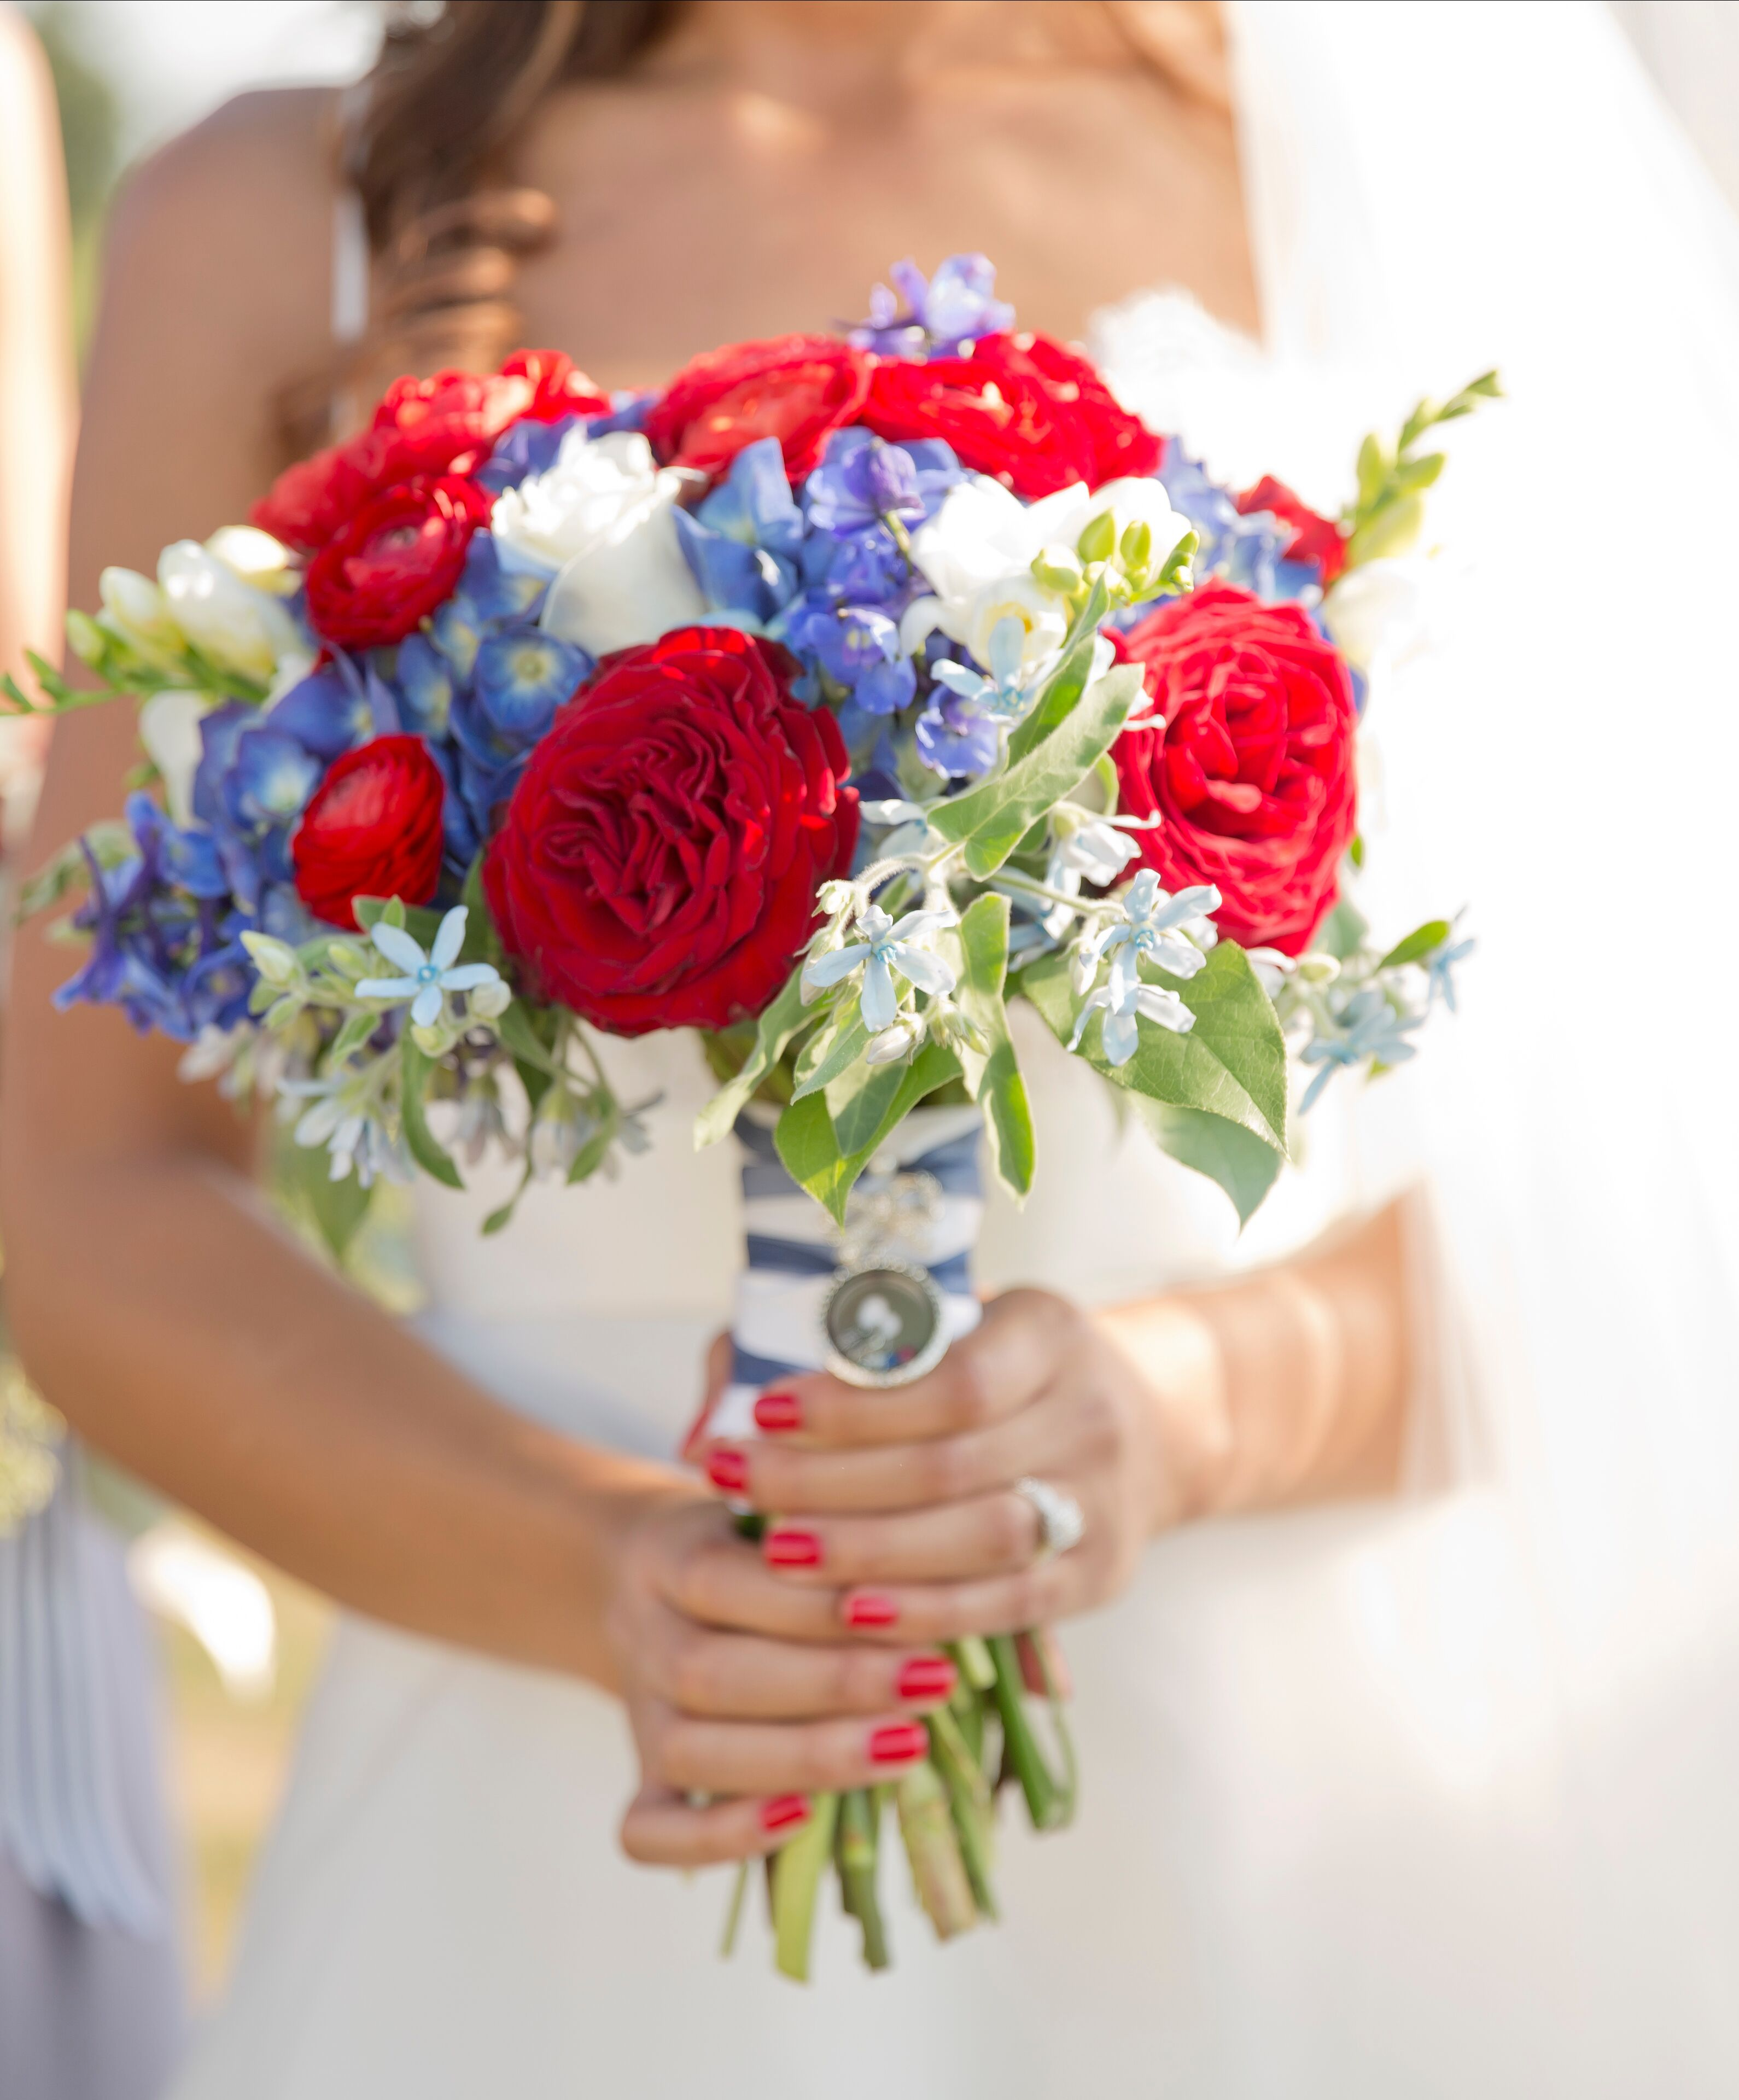 White And Red Wedding Flowers: Red, White And Blue Rose Bridal Bouquet